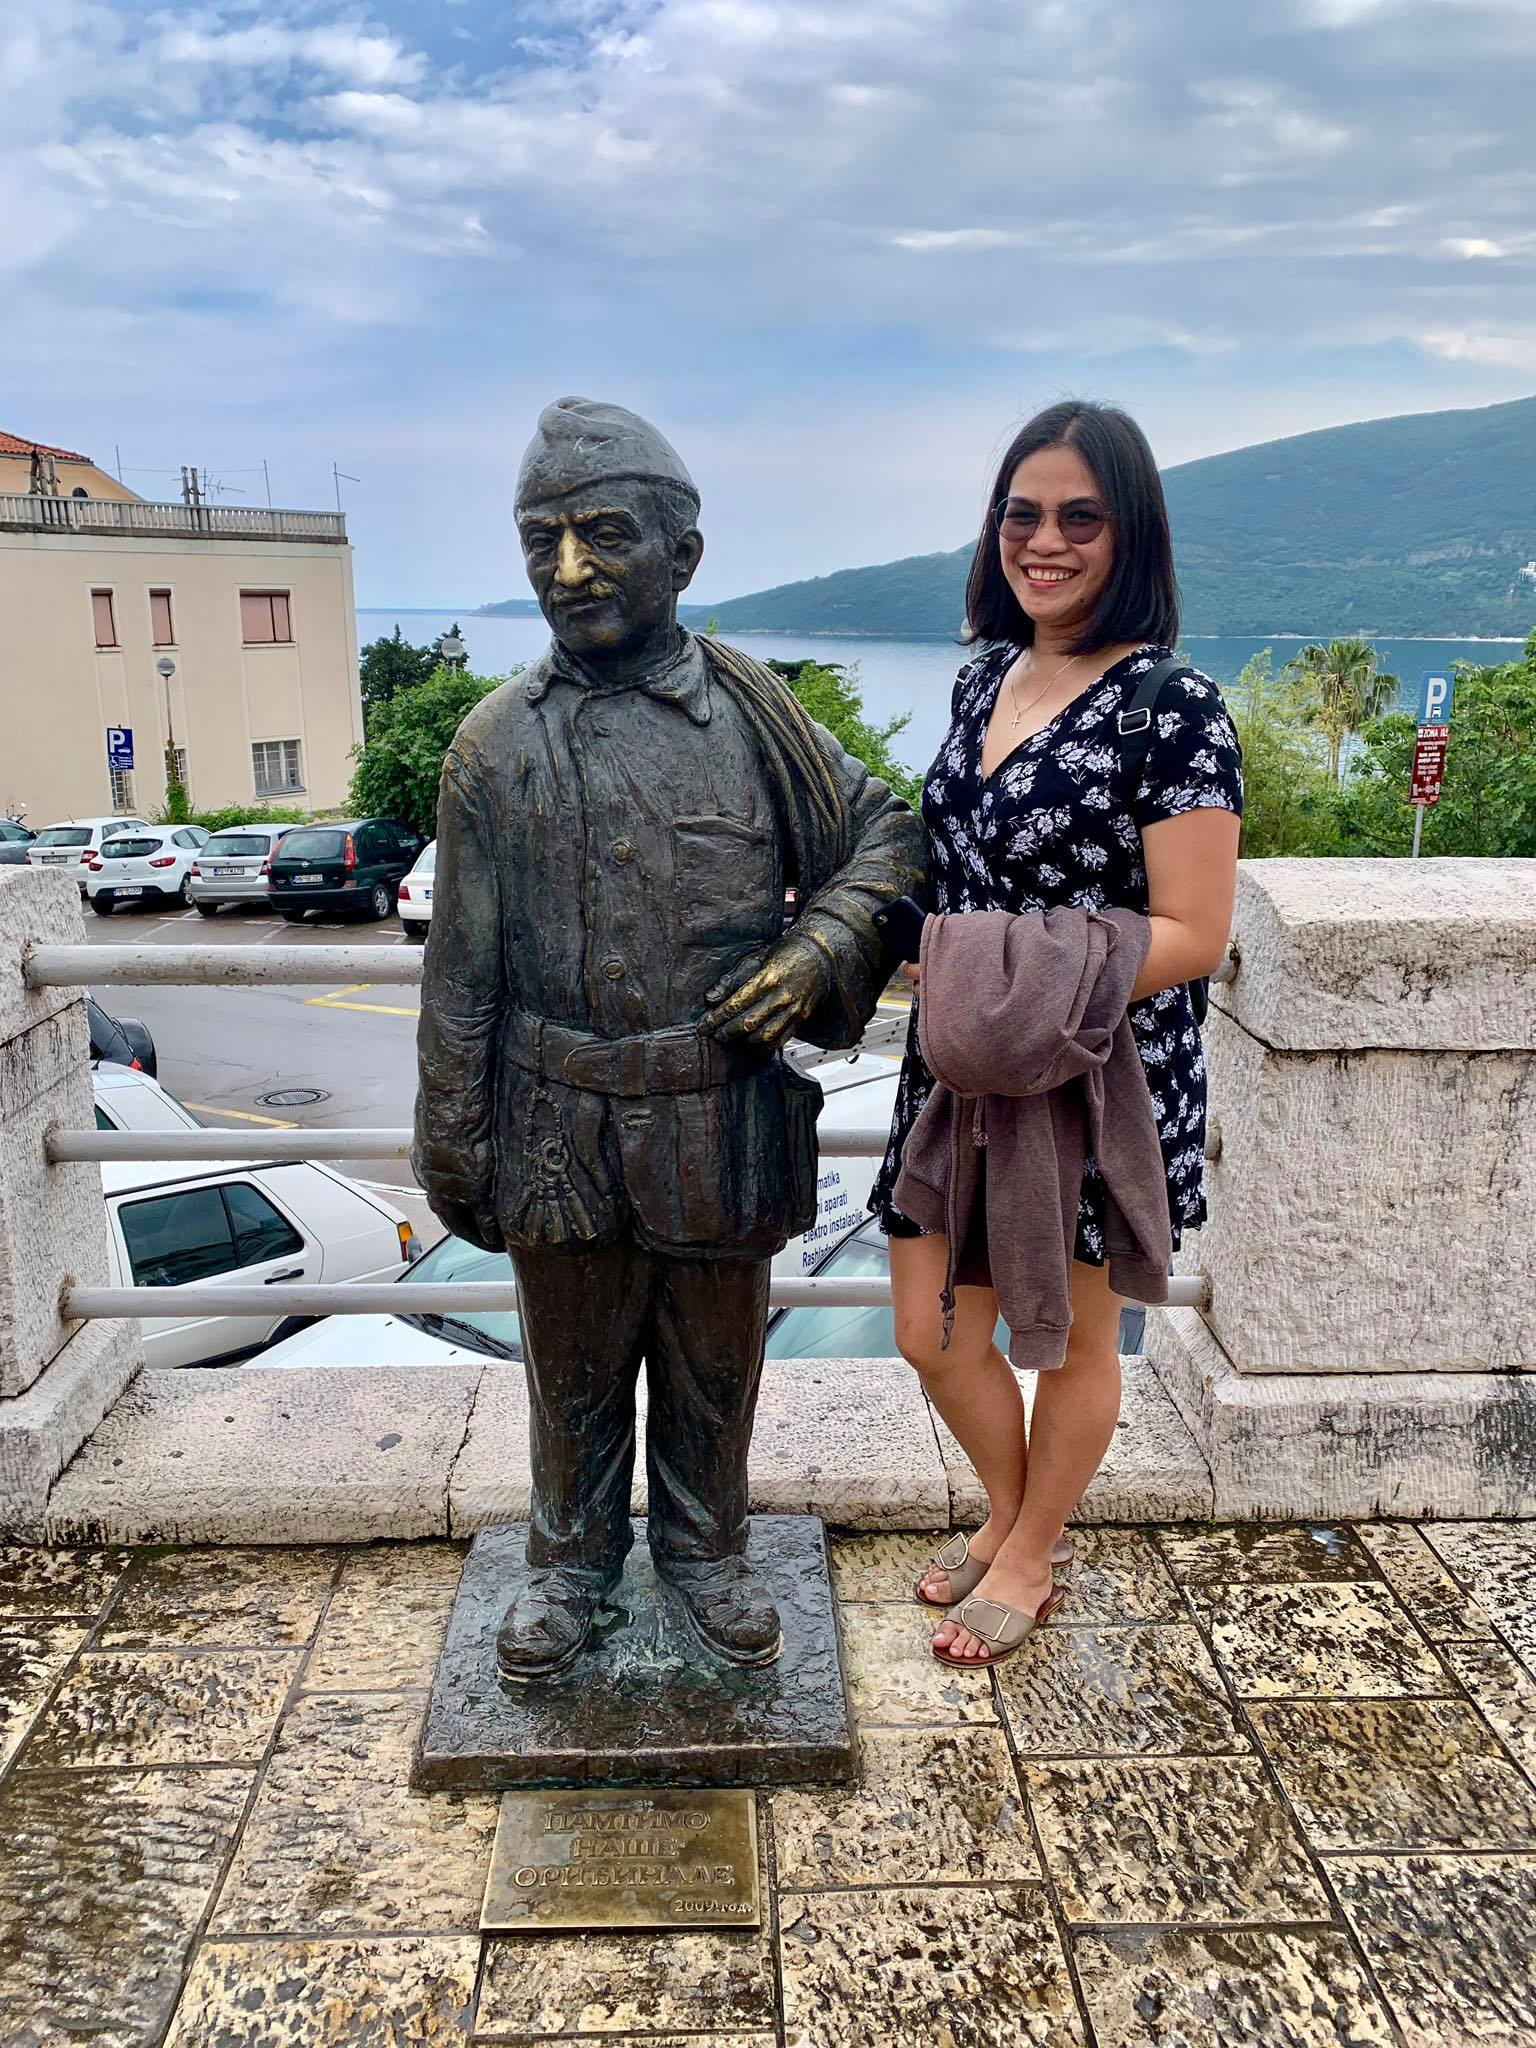 Expat Life in Montenegro Day 3 We have our first visitor already in our new home here in Herceg Novi14.jpg